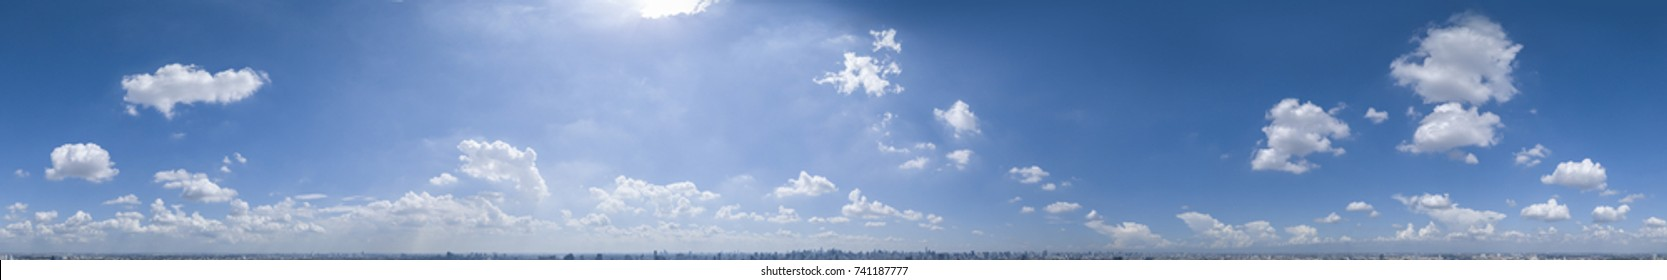 360 seamless cloudy blue sky panorama at sunny afternoon in Spherical (Equirectangular) format, THAILAND